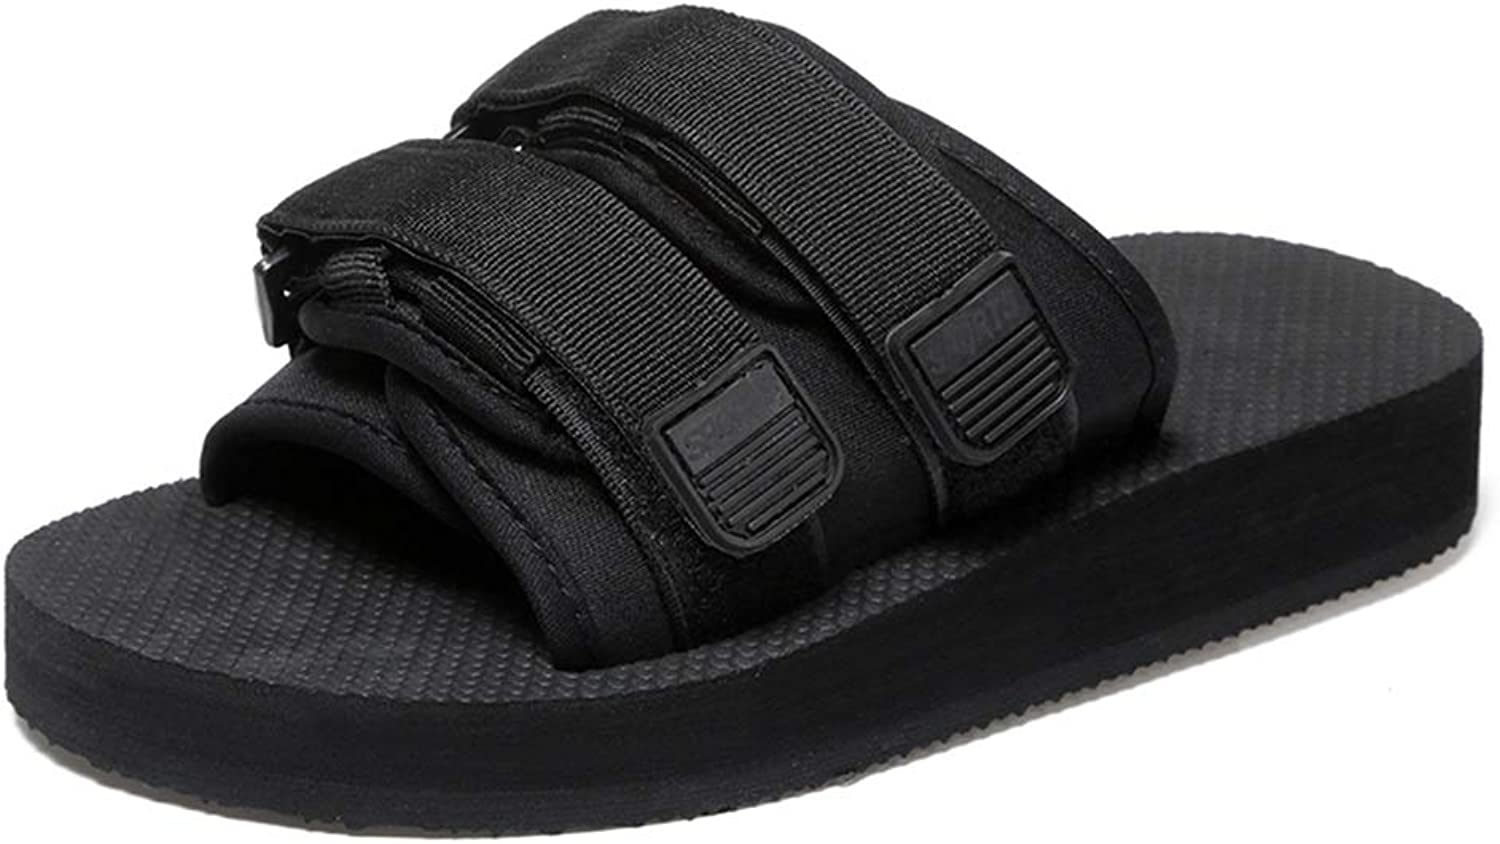 Battle Men Summer Casual Pool Slides for Men Women Unisex Fabric Lightweight Soft Flat Slippers Anti-Slip Slip-on Quick-Drying Round Open Toe Casual (color   Black, Size   10 D(M) US)